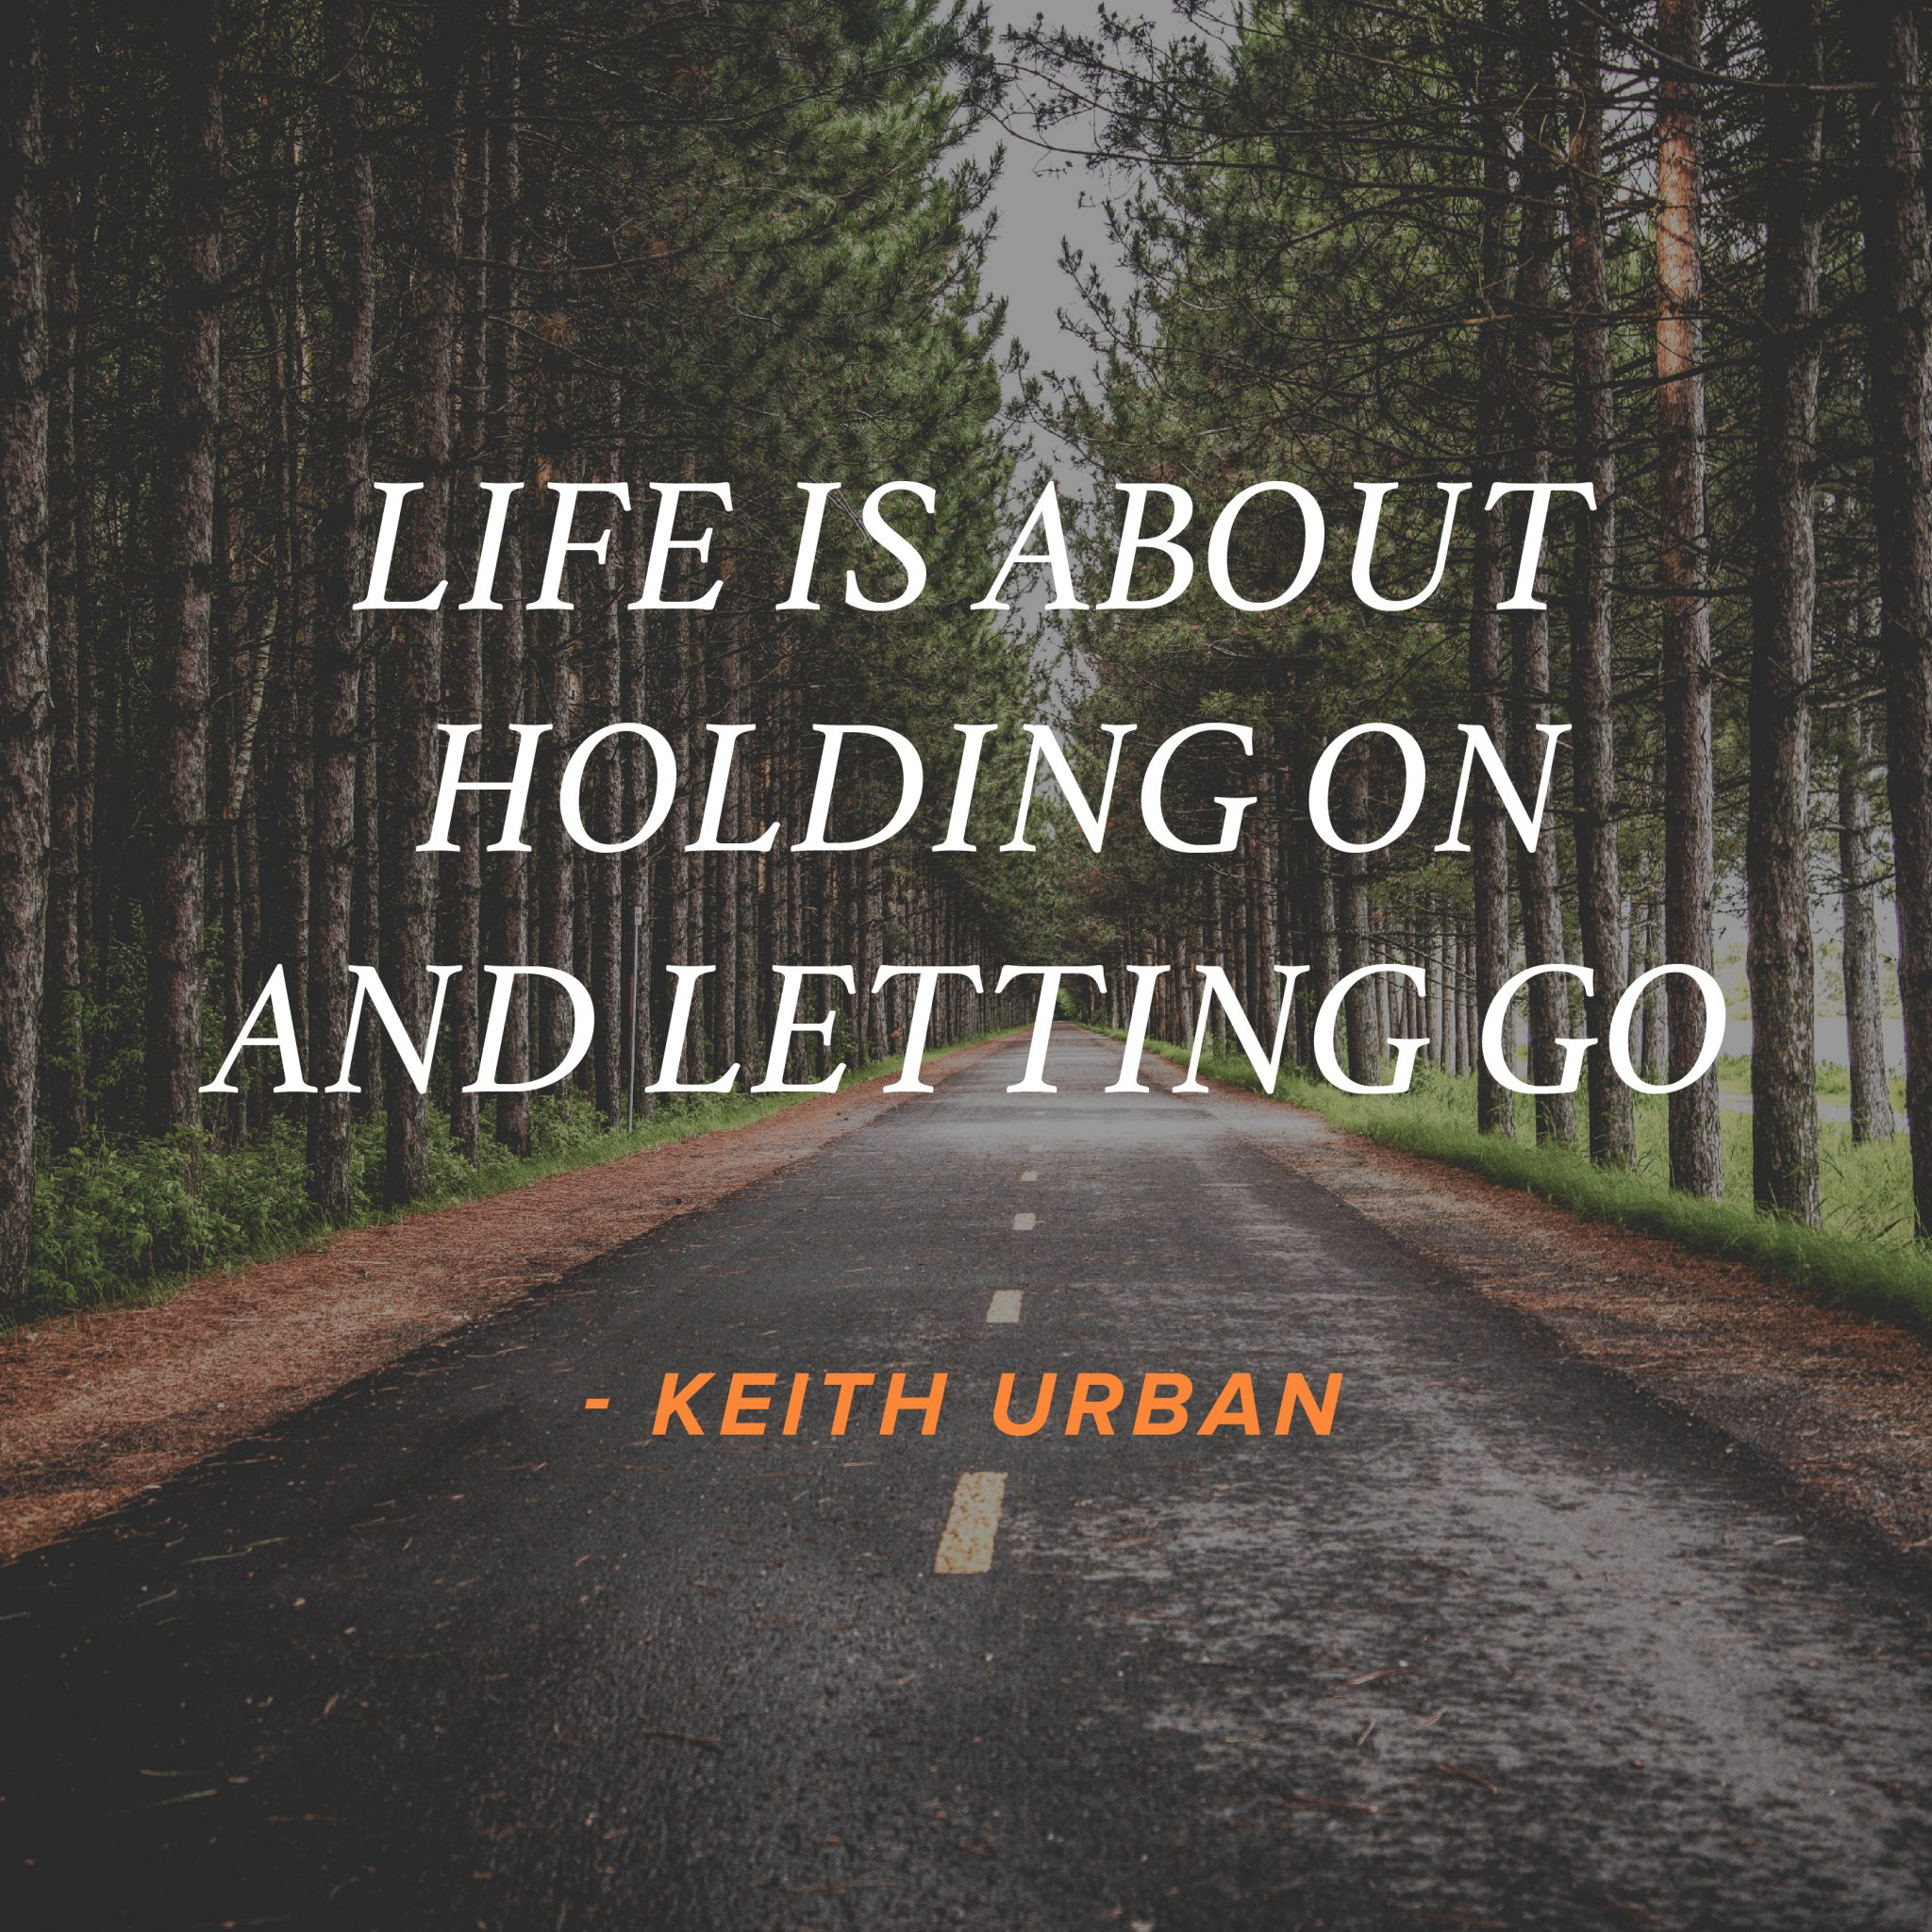 keith urban - life is about holding on and letting go